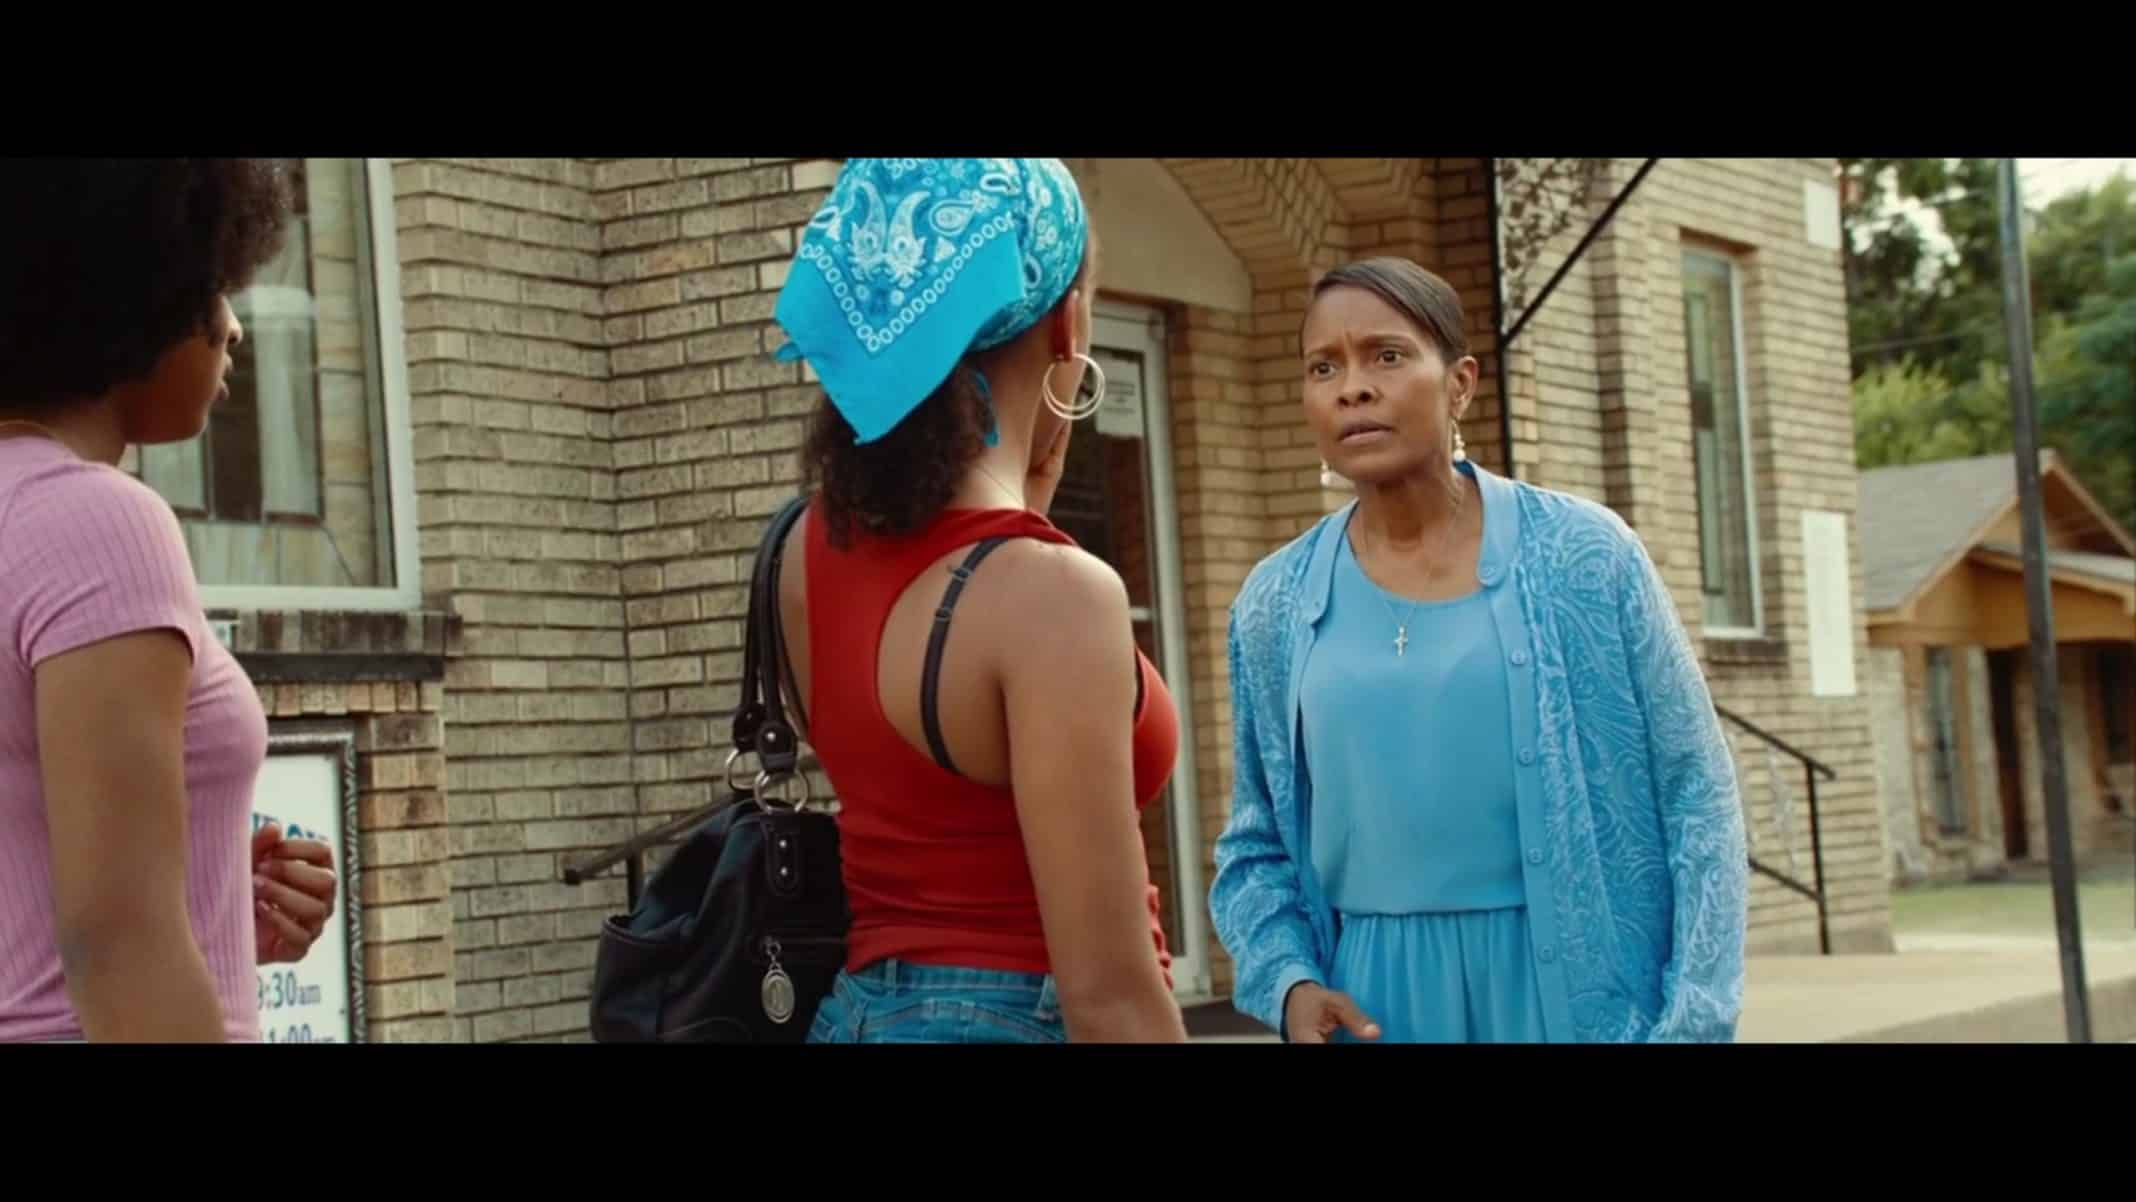 Charlotte (Lori Hayes) talking to Turquoise outside of church.